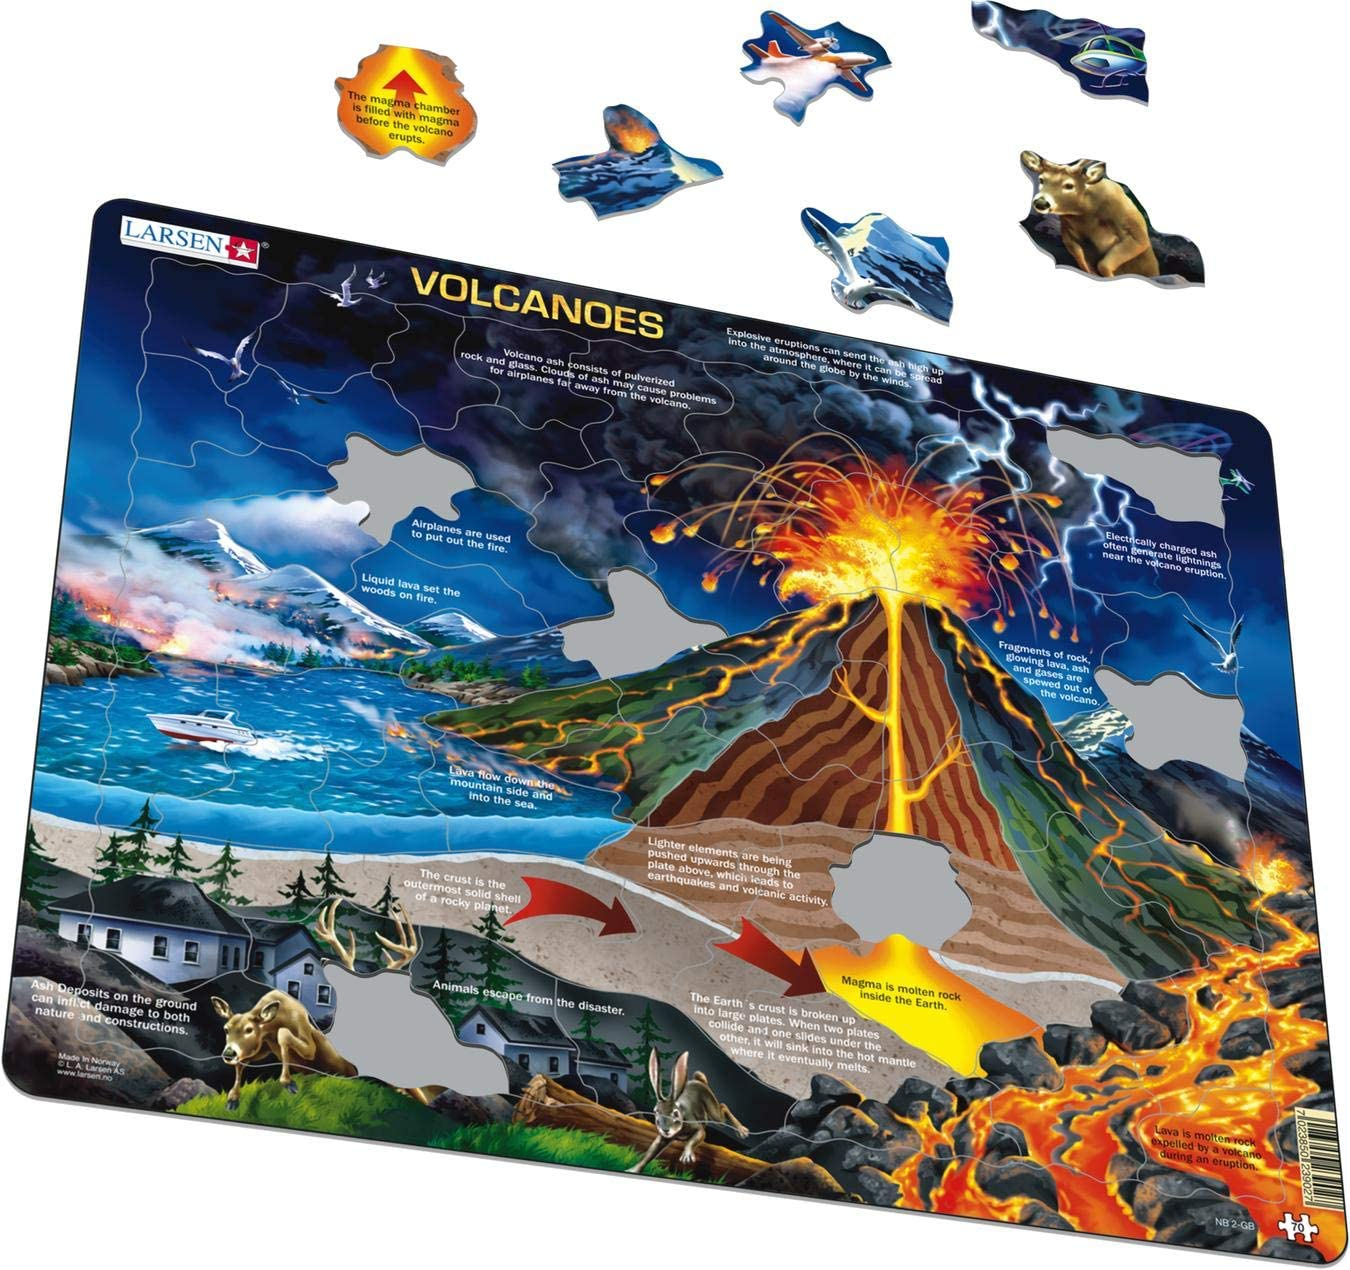 Imported from Norway 70 Piece Tray /& Frame Style Puzzle Larsen Puzzles Volcanoes Educational Jigsaw Puzzle Exclusive Premium Hand Made Puzzles